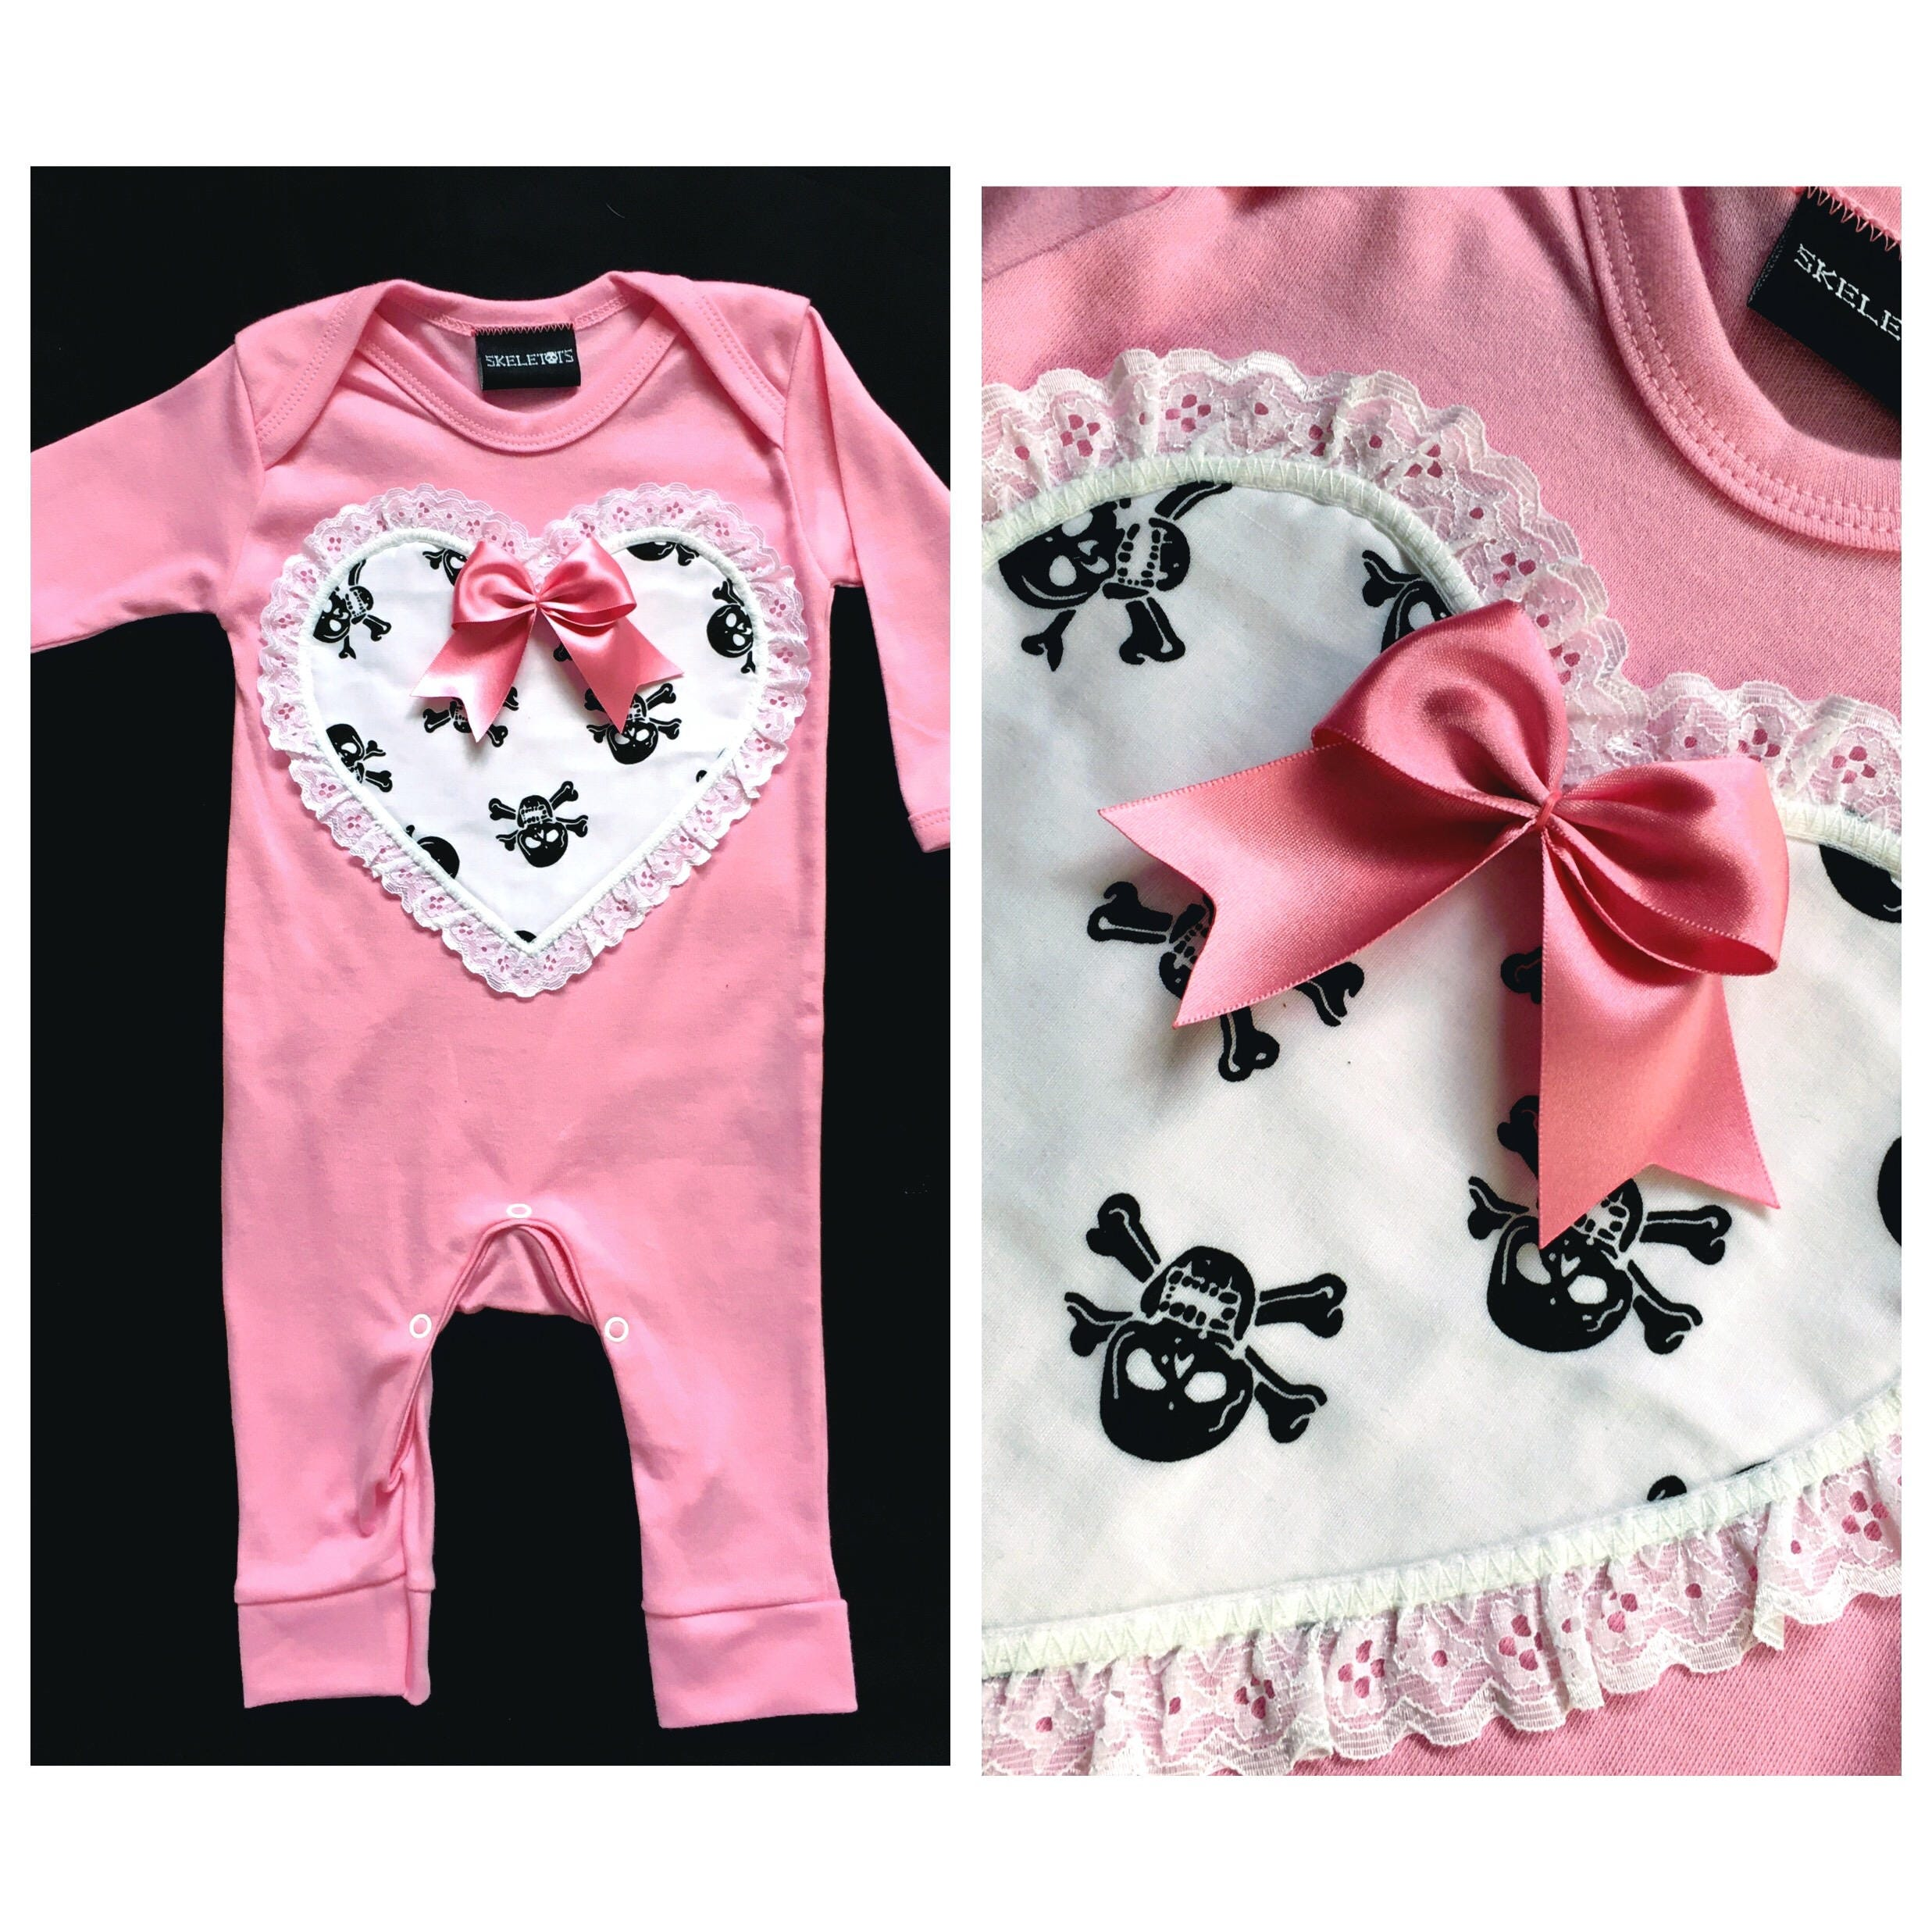 Skeletots pink  white skull footless romper lace rock baby goth 03m to 12m